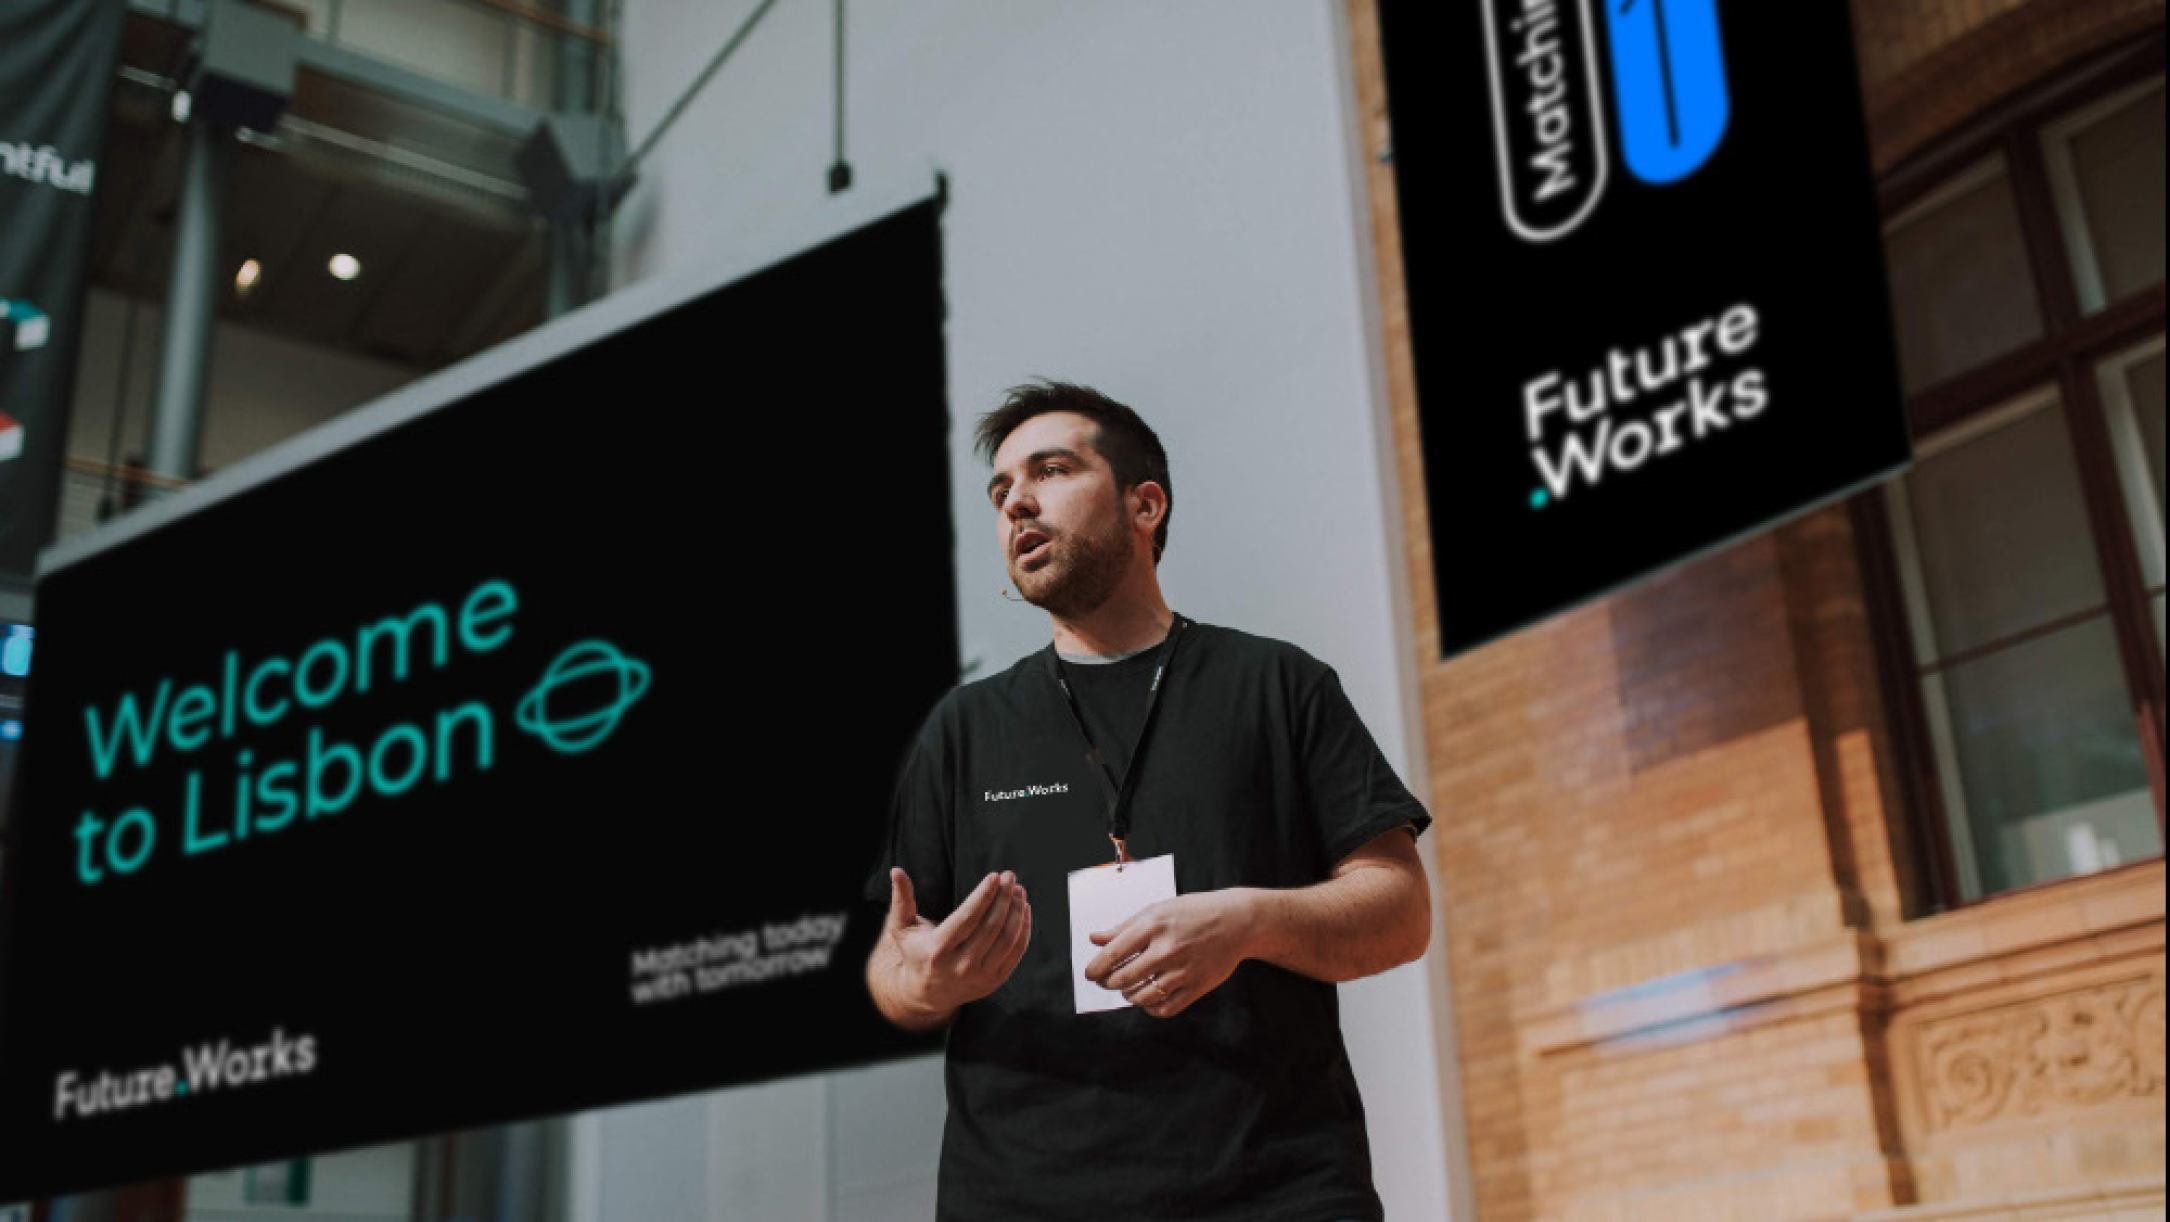 Pedro Oliveira, co-founder of Future.Works (Photo credit: Future.Works) career